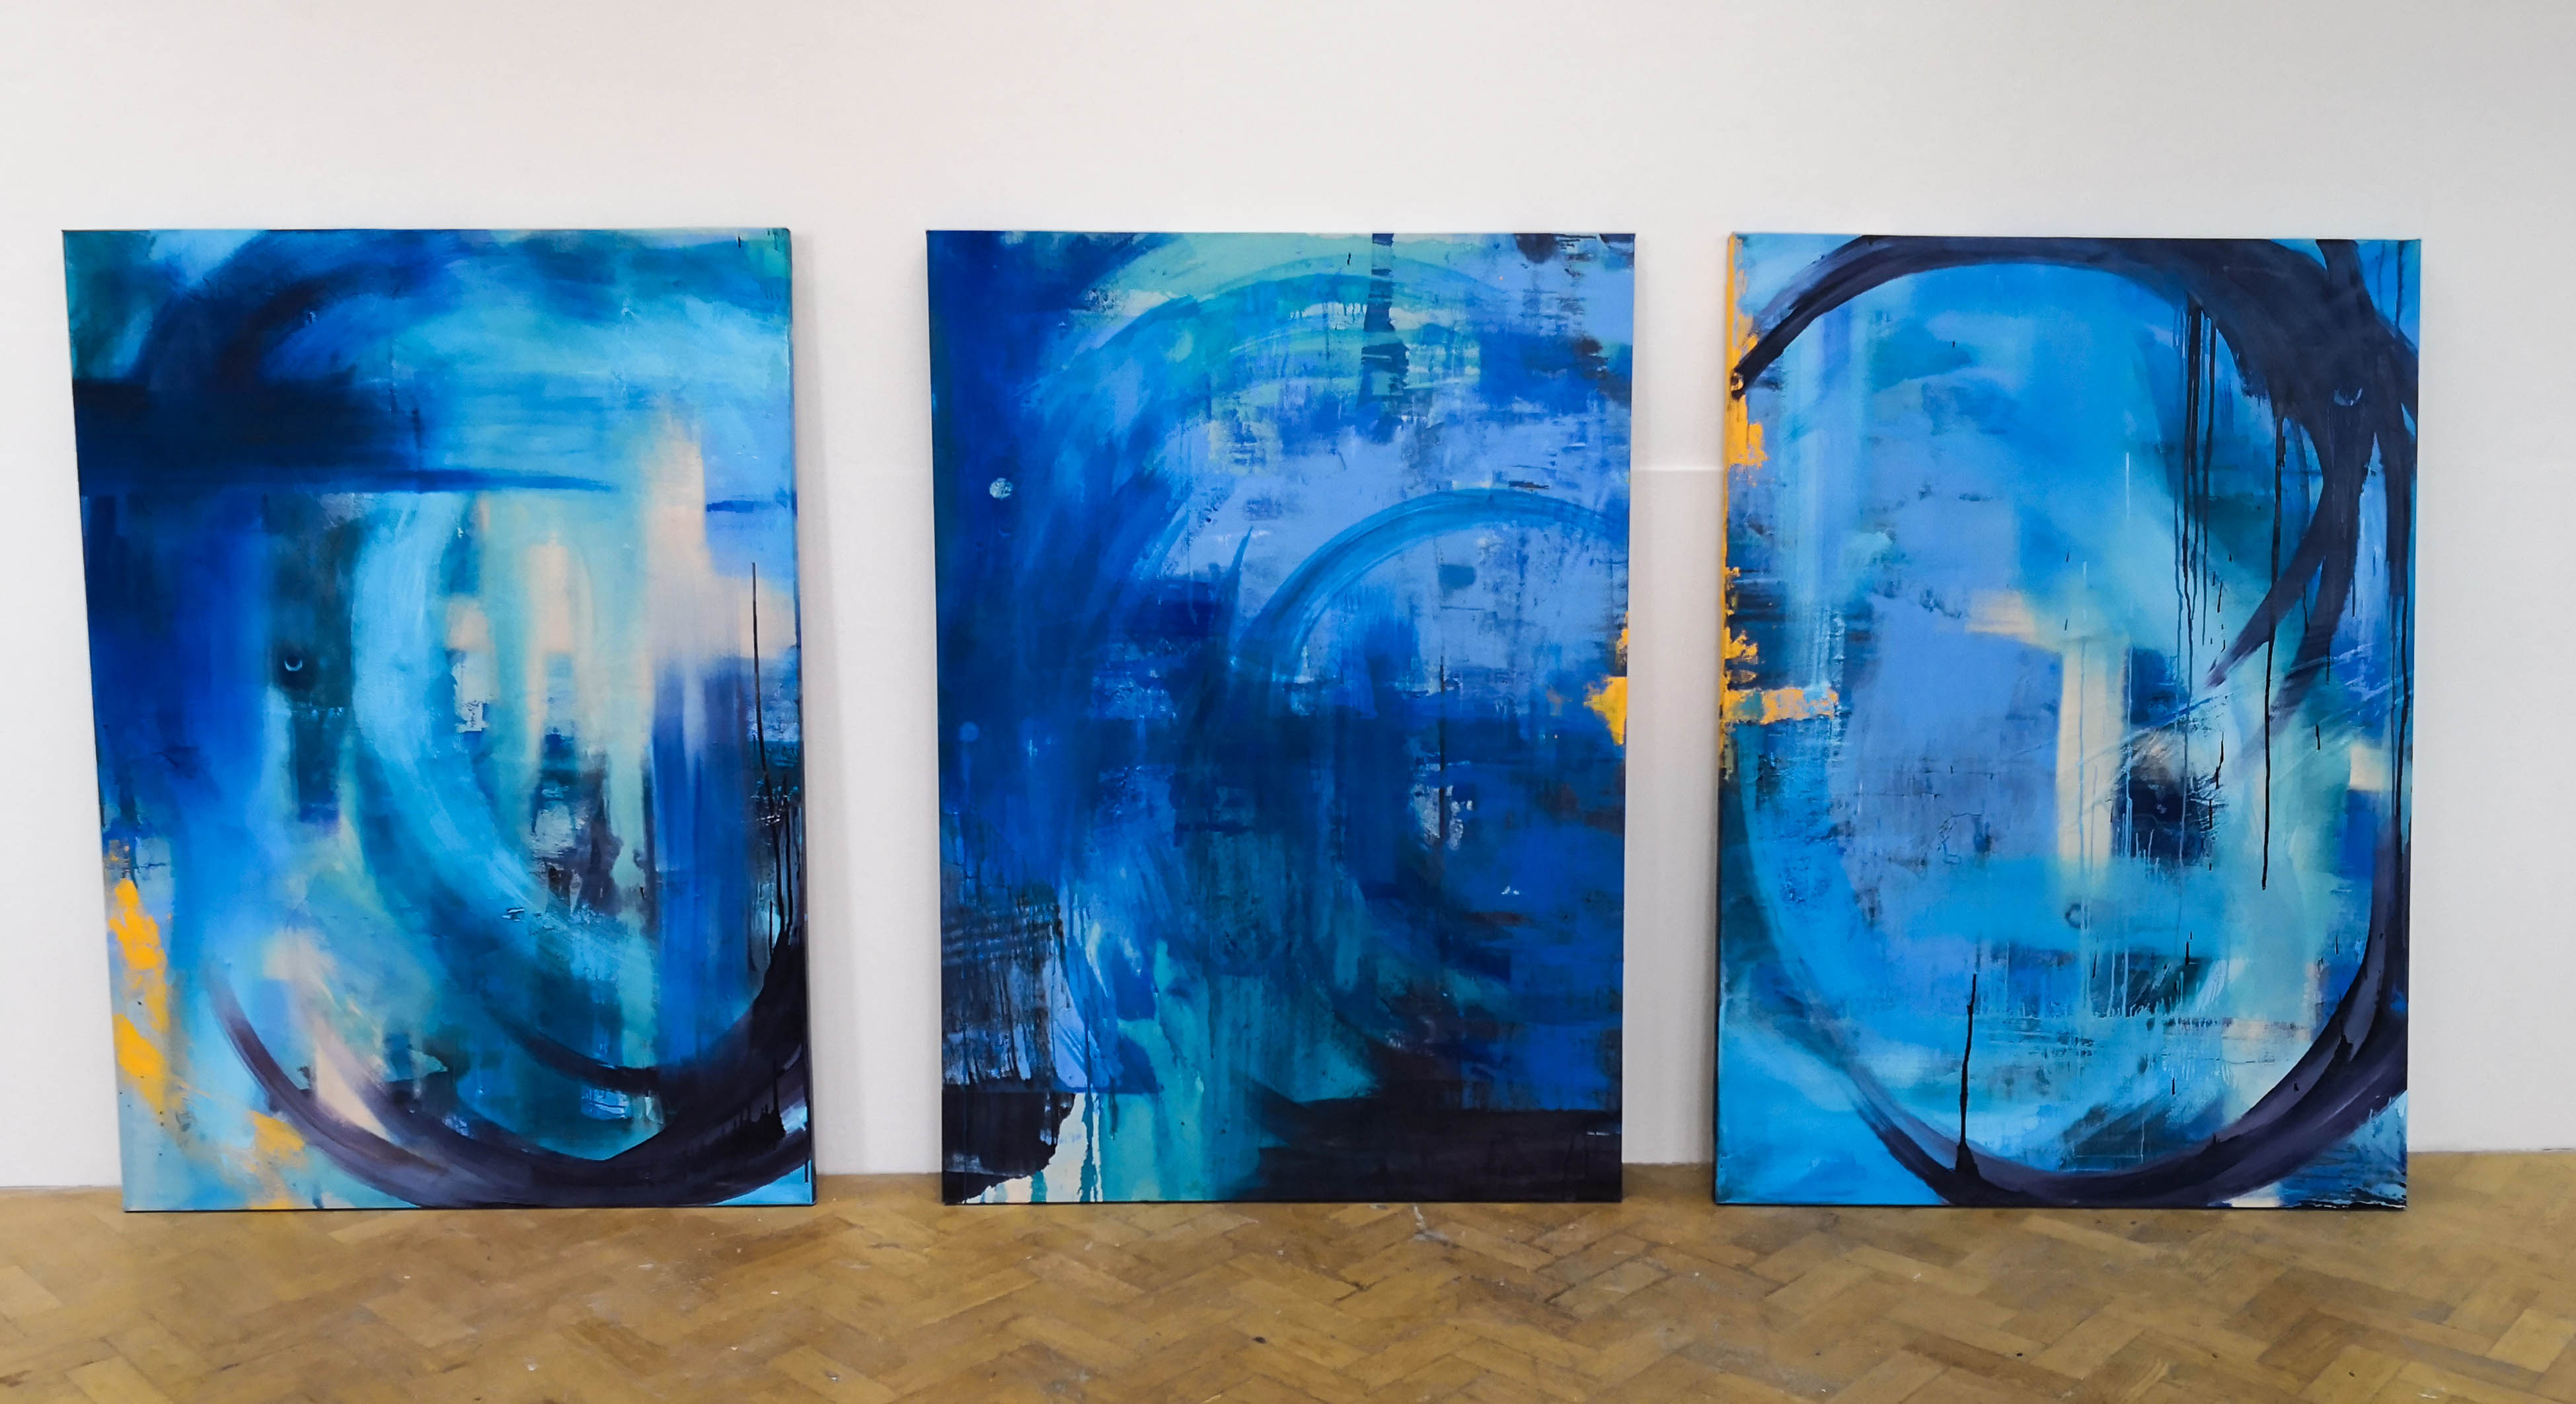 Blue Series 3. Oil on canvas. Triptych. 190.8x114.5cm. For Sale.